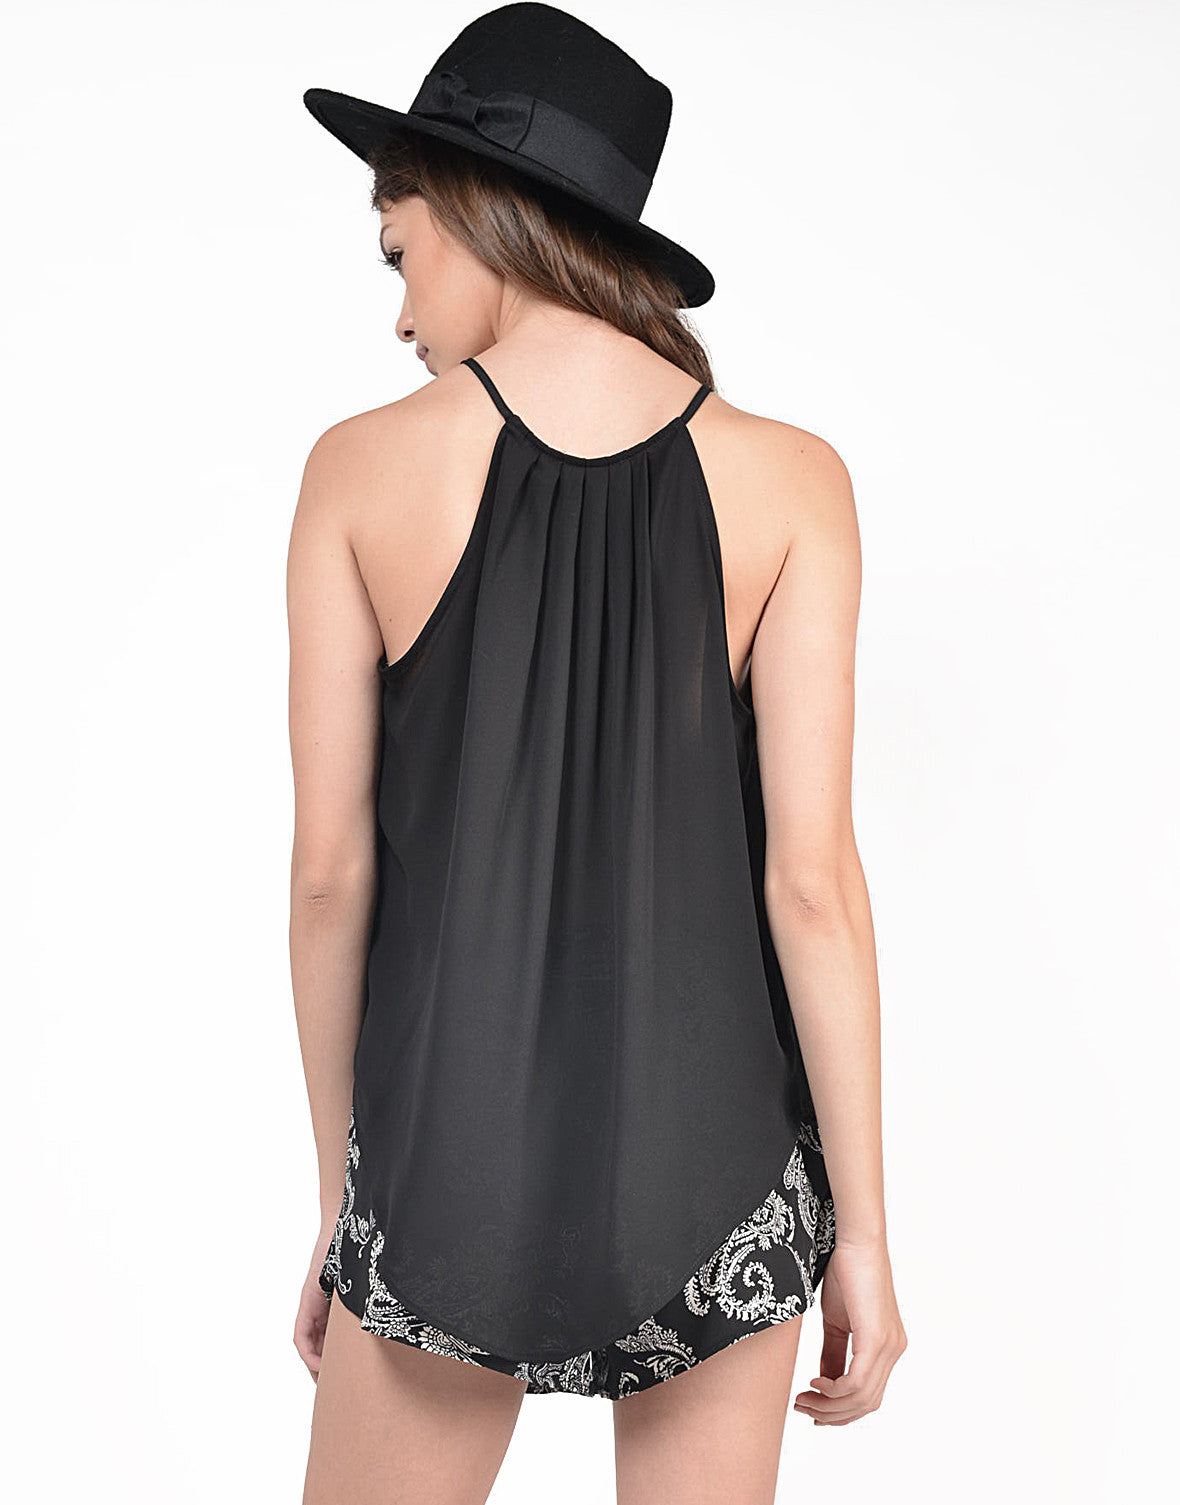 Back View of Chiffon Halter Top